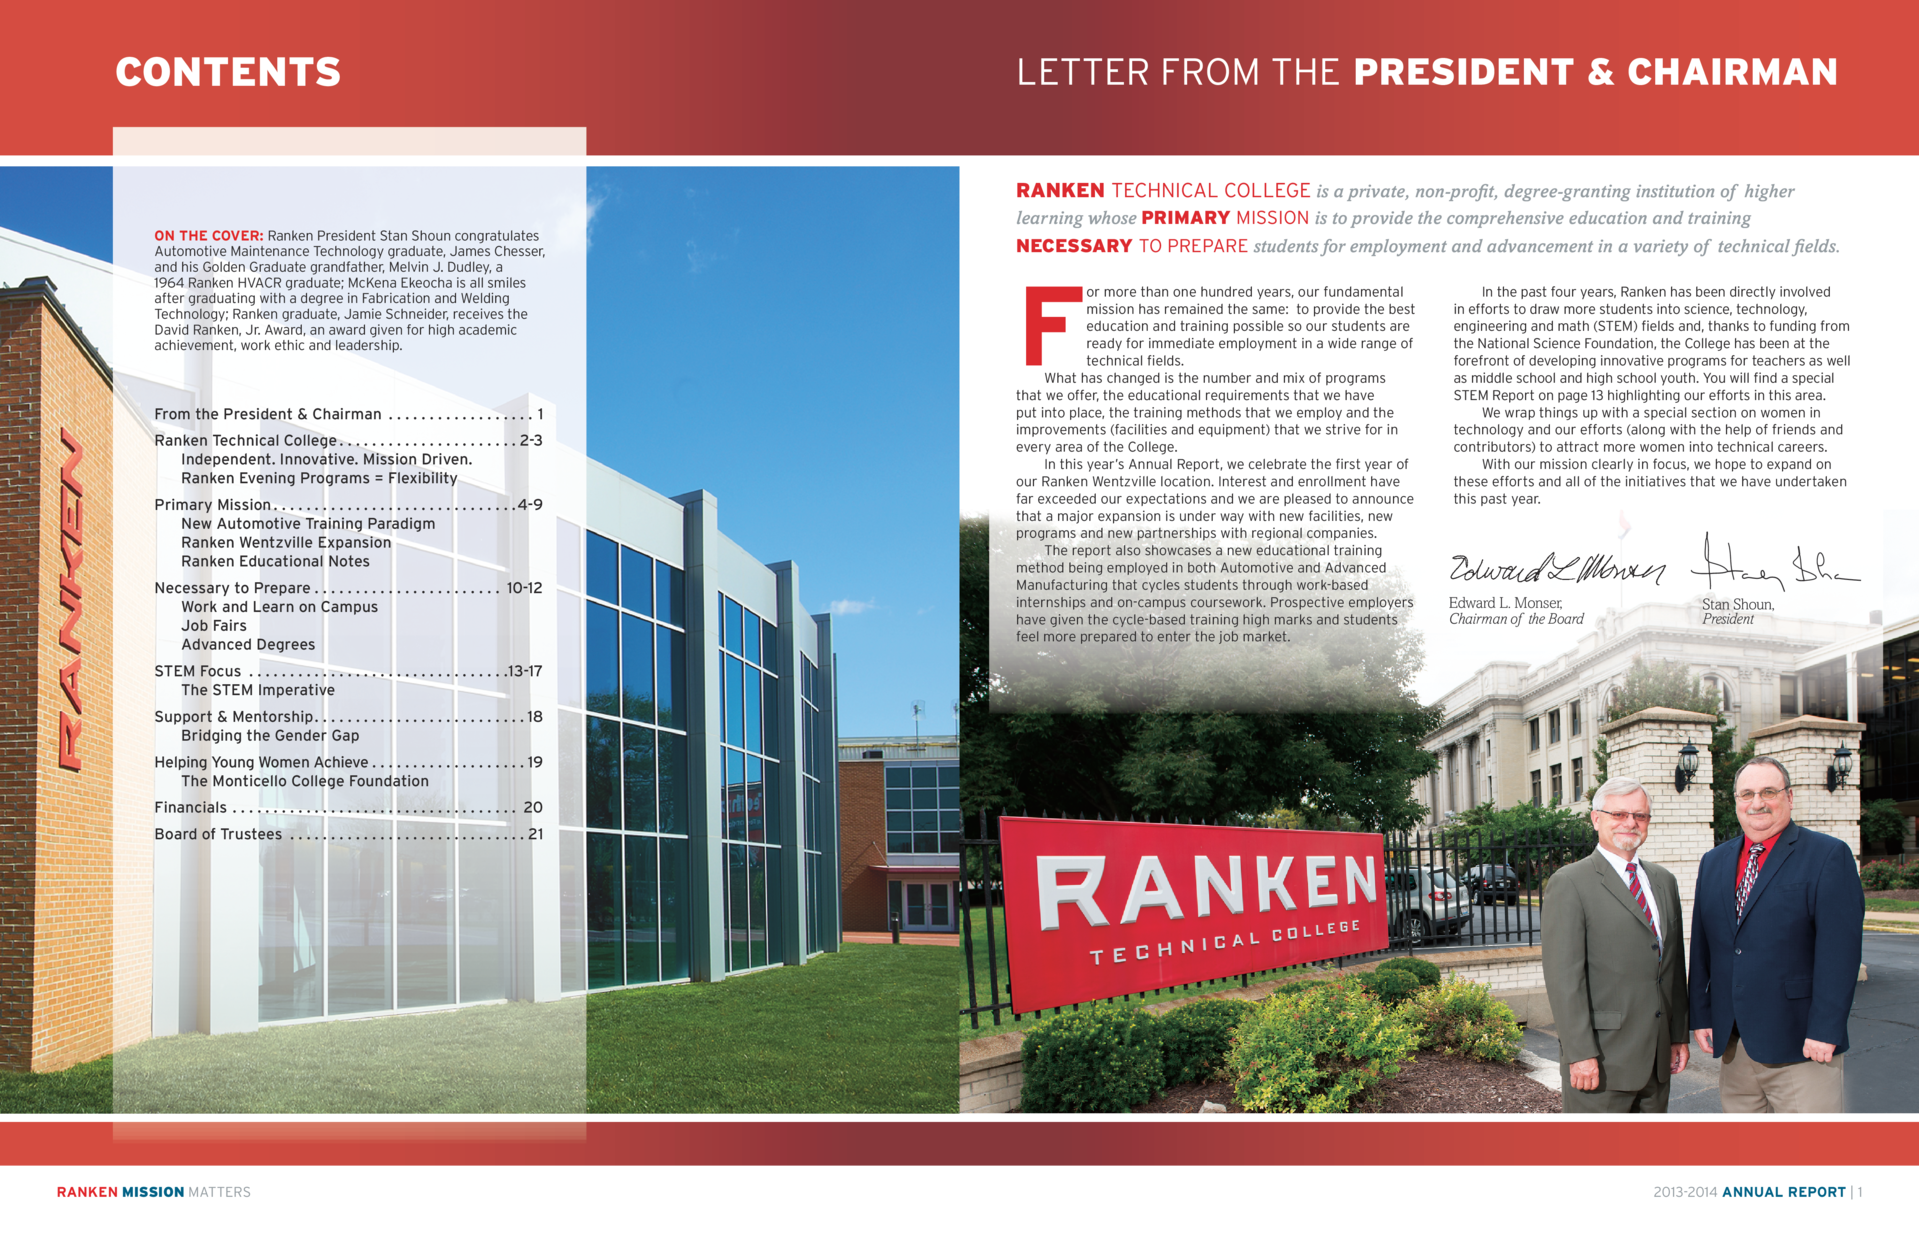 CONTENTS  LETTER FROM THE PRESIDENT   CHAIRMAN RANKEN TECHNICAL COLLEGE is a private, non-profit, degree-granting institut...